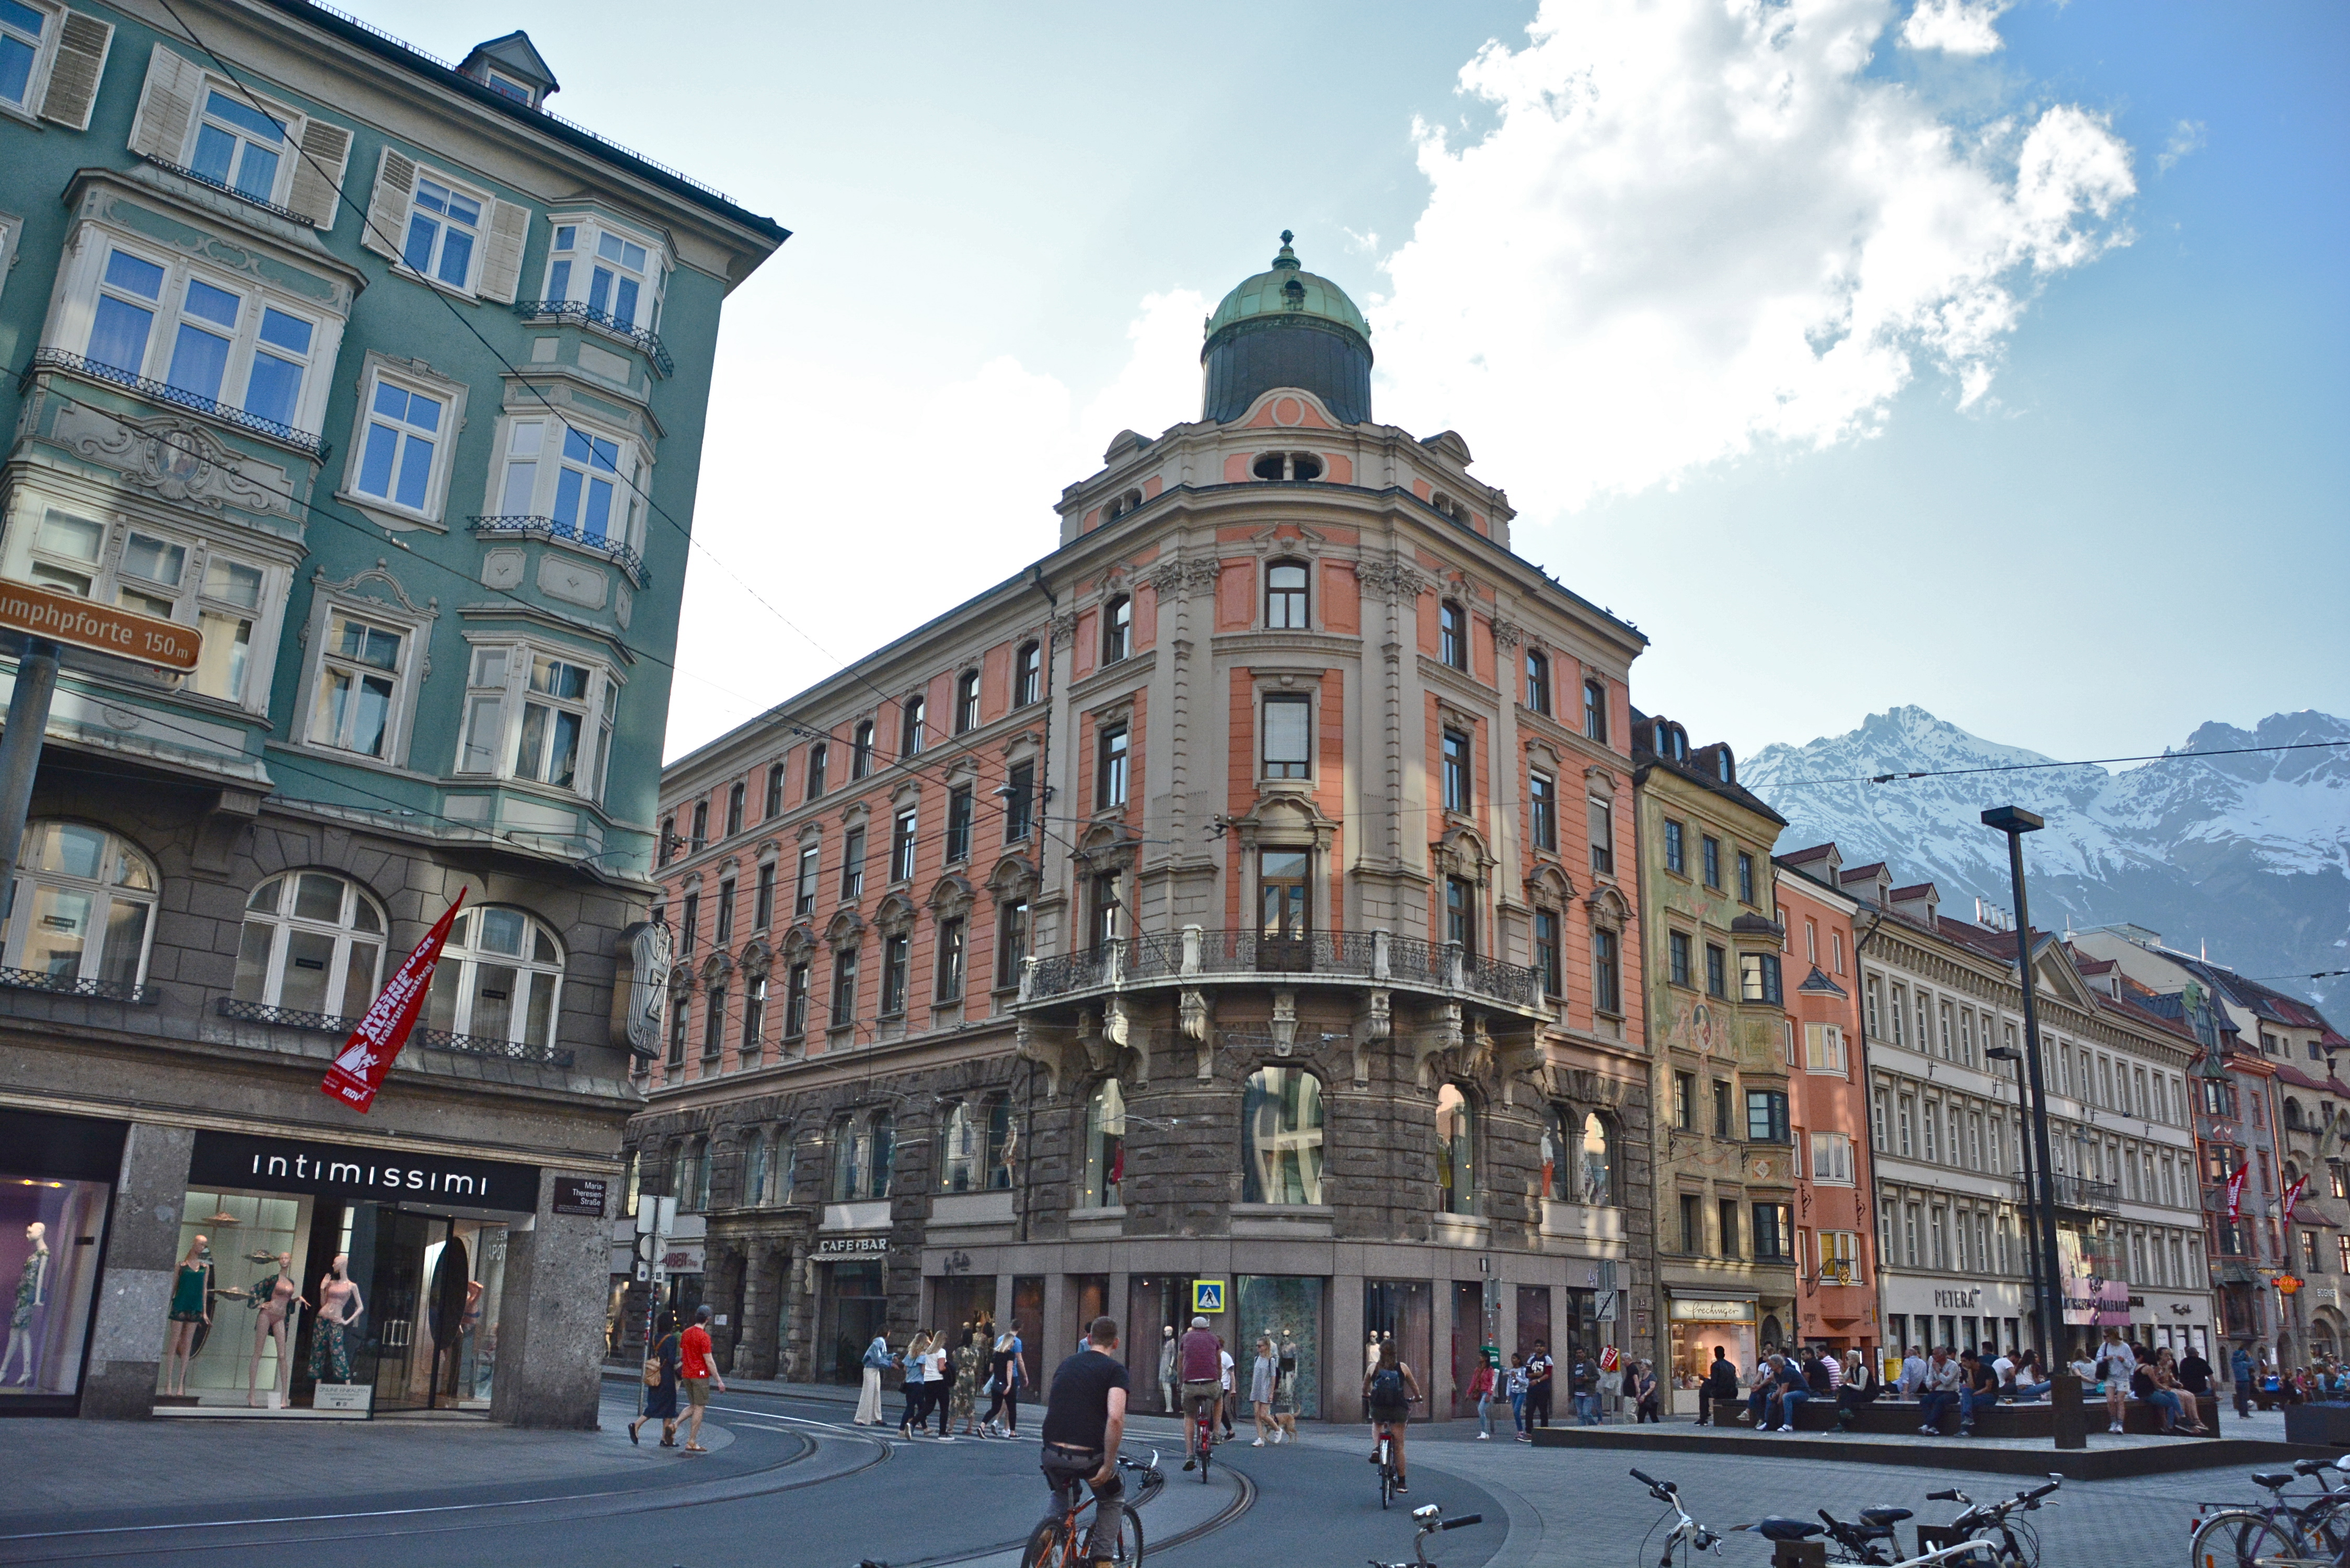 Free download high resolution image - free image free photo free stock image public domain picture -Evening scene in Innsbruck, Austria